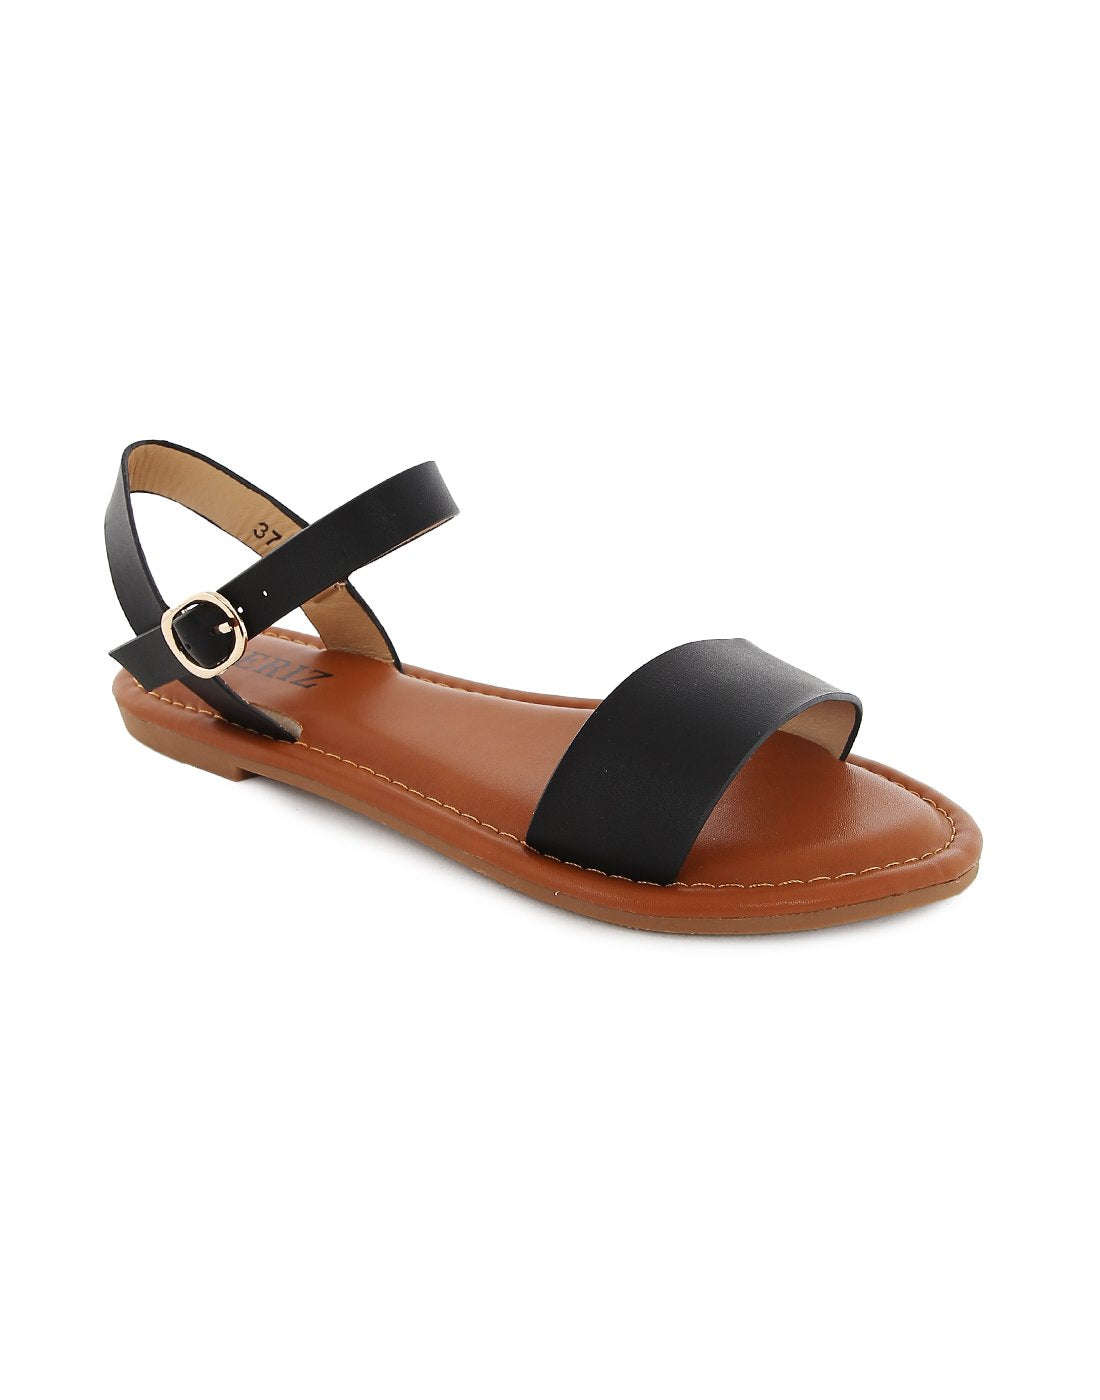 Midas Basic Black Sandals